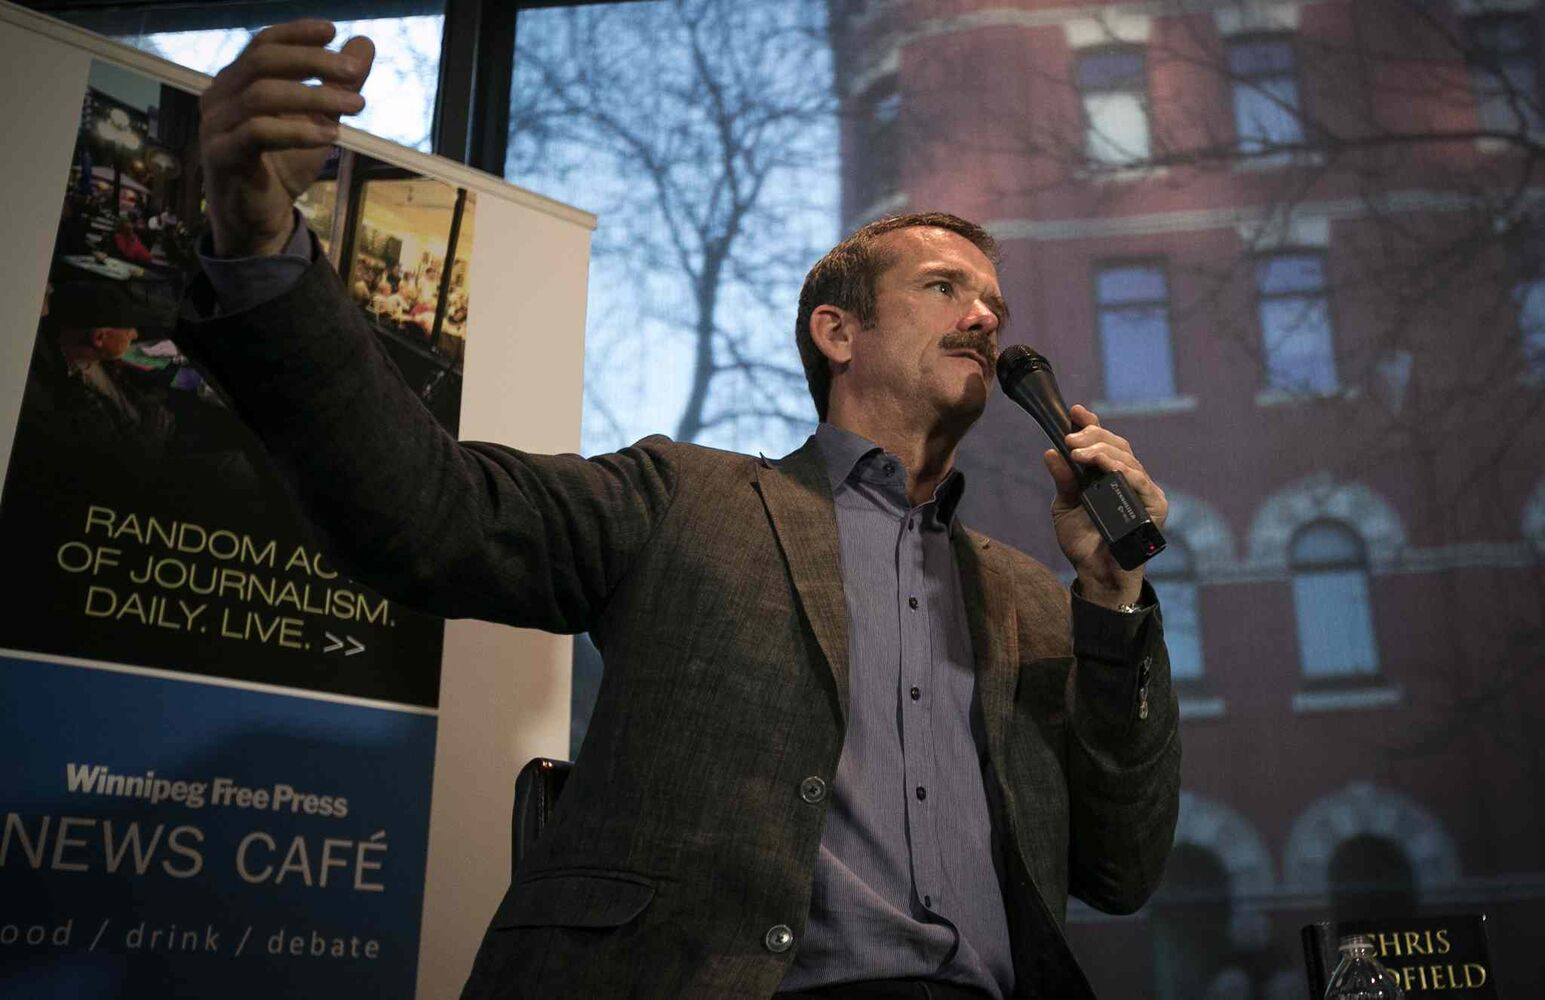 Col. Chris Hadfield explains the intricacies of space flight to a packed Winnipeg Free Press News Café on Wednesday. (Melissa Tait / Winnipeg Free Press)